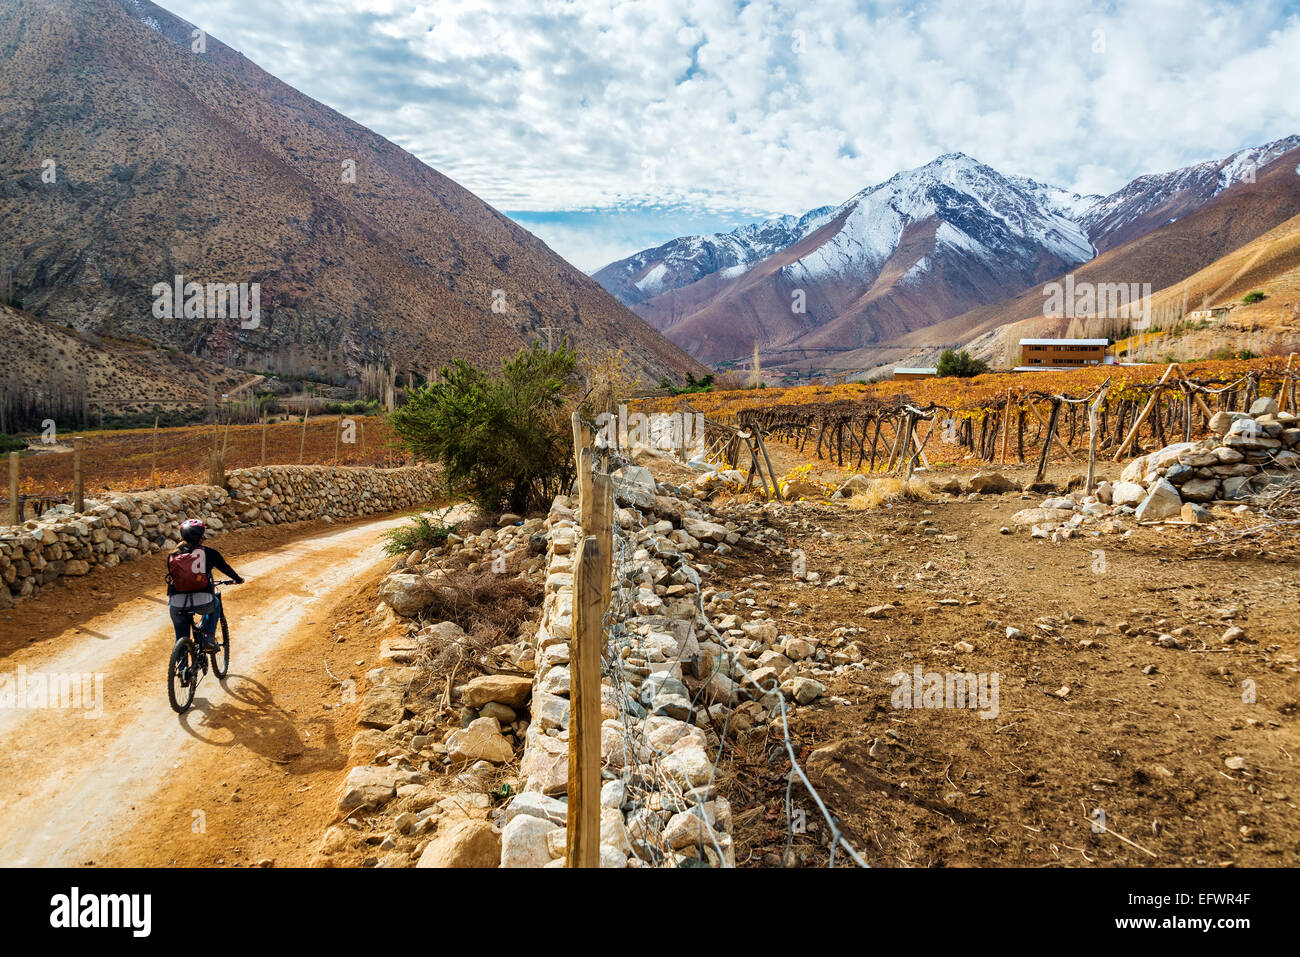 Young woman mountain biking in the Elqui Valley near Vicuna, Chile with the Andes mountains in the background - Stock Image